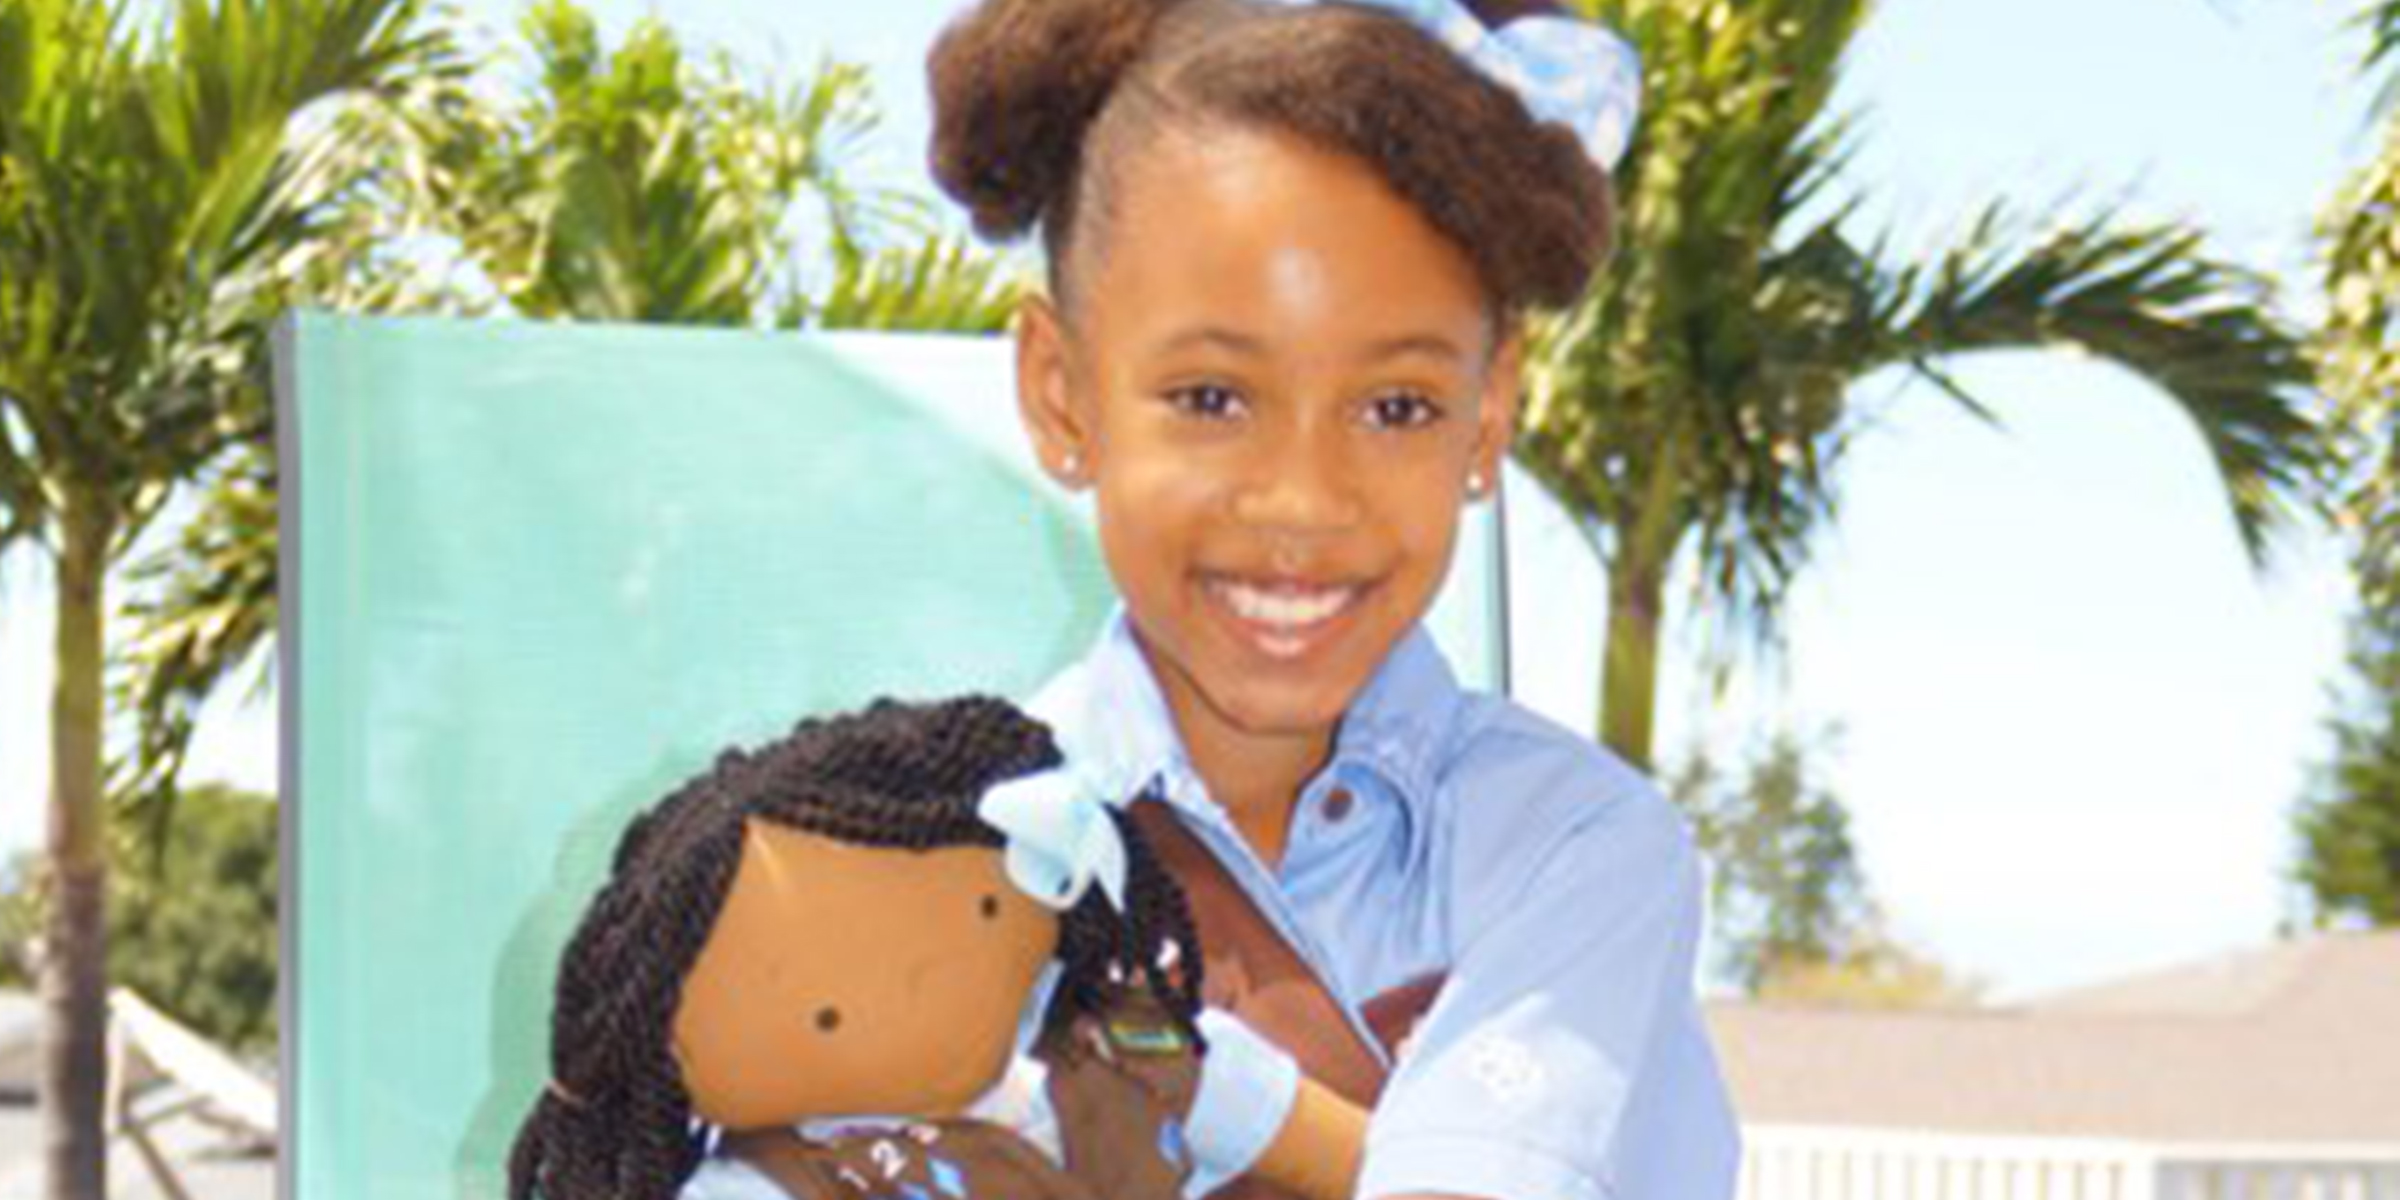 Kids with physical differences see themselves in A Doll Like Me